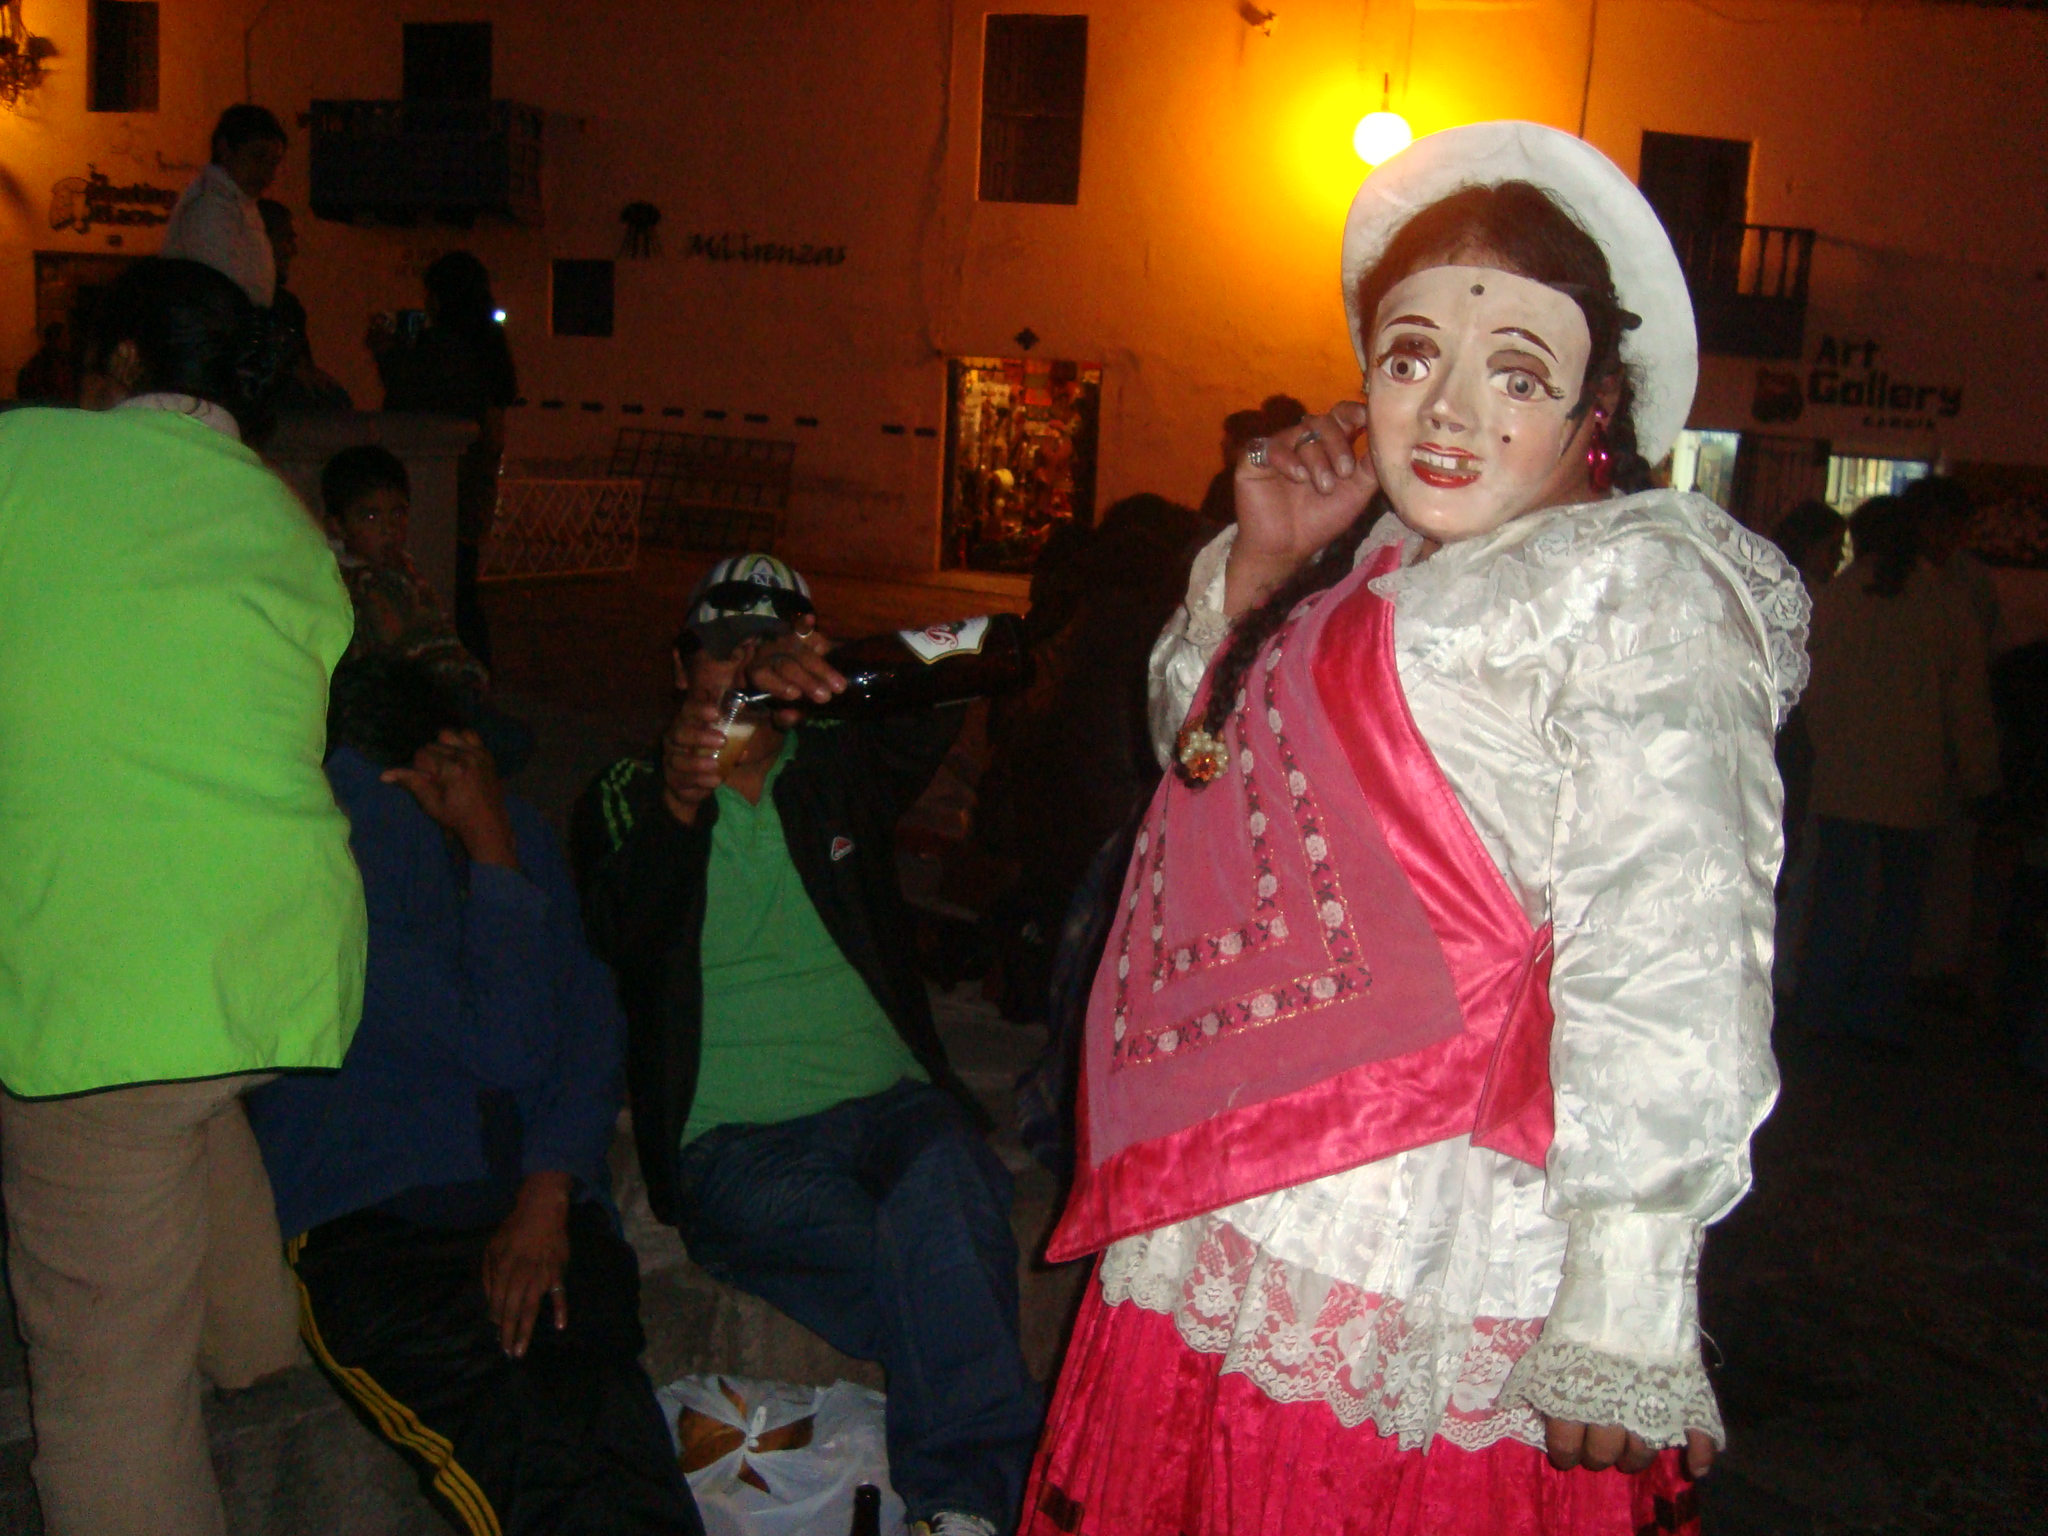 Dancer in San Blas, Cuzco for Carnival